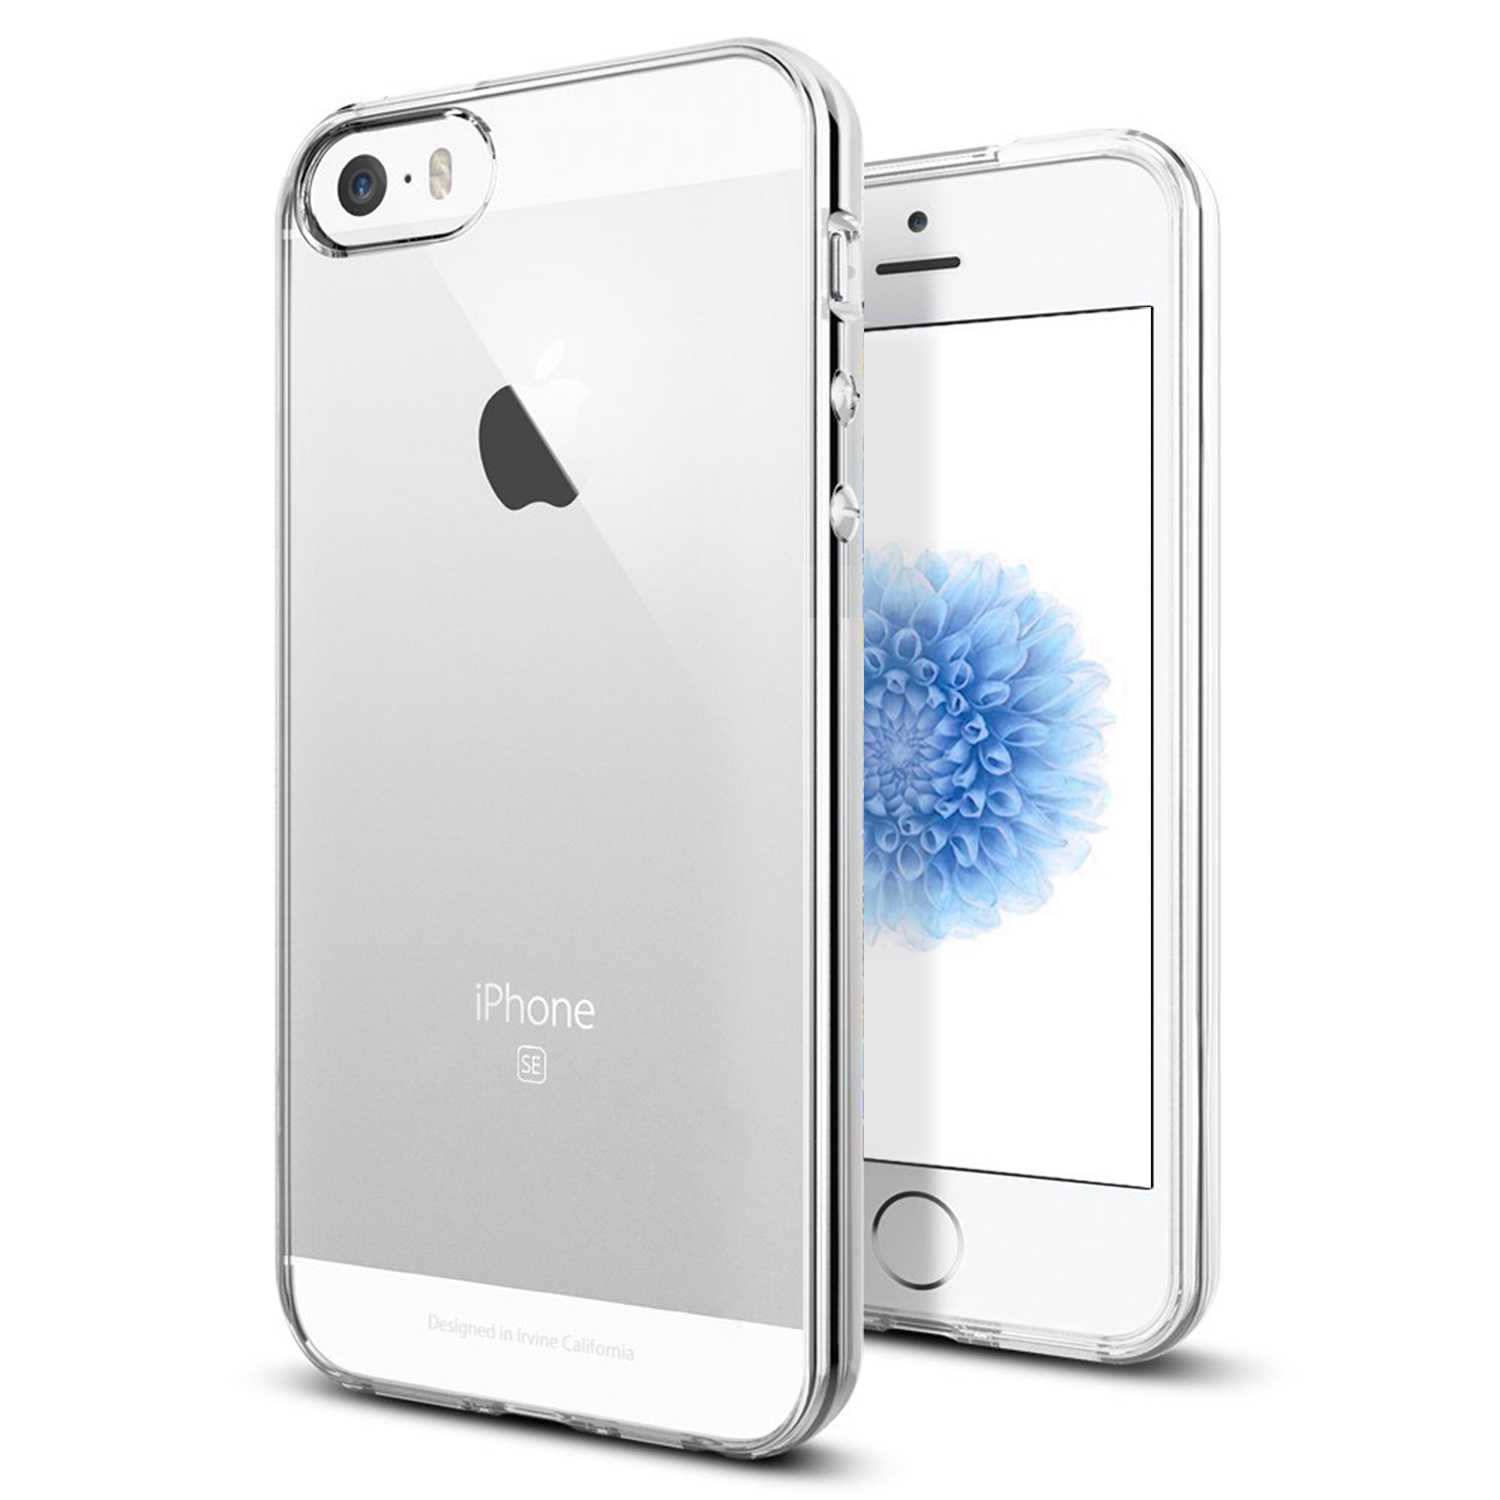 TENOC Case for Apple iPhone 5/5s/SE, Crystal Clear Soft TPU Full Protective Cover